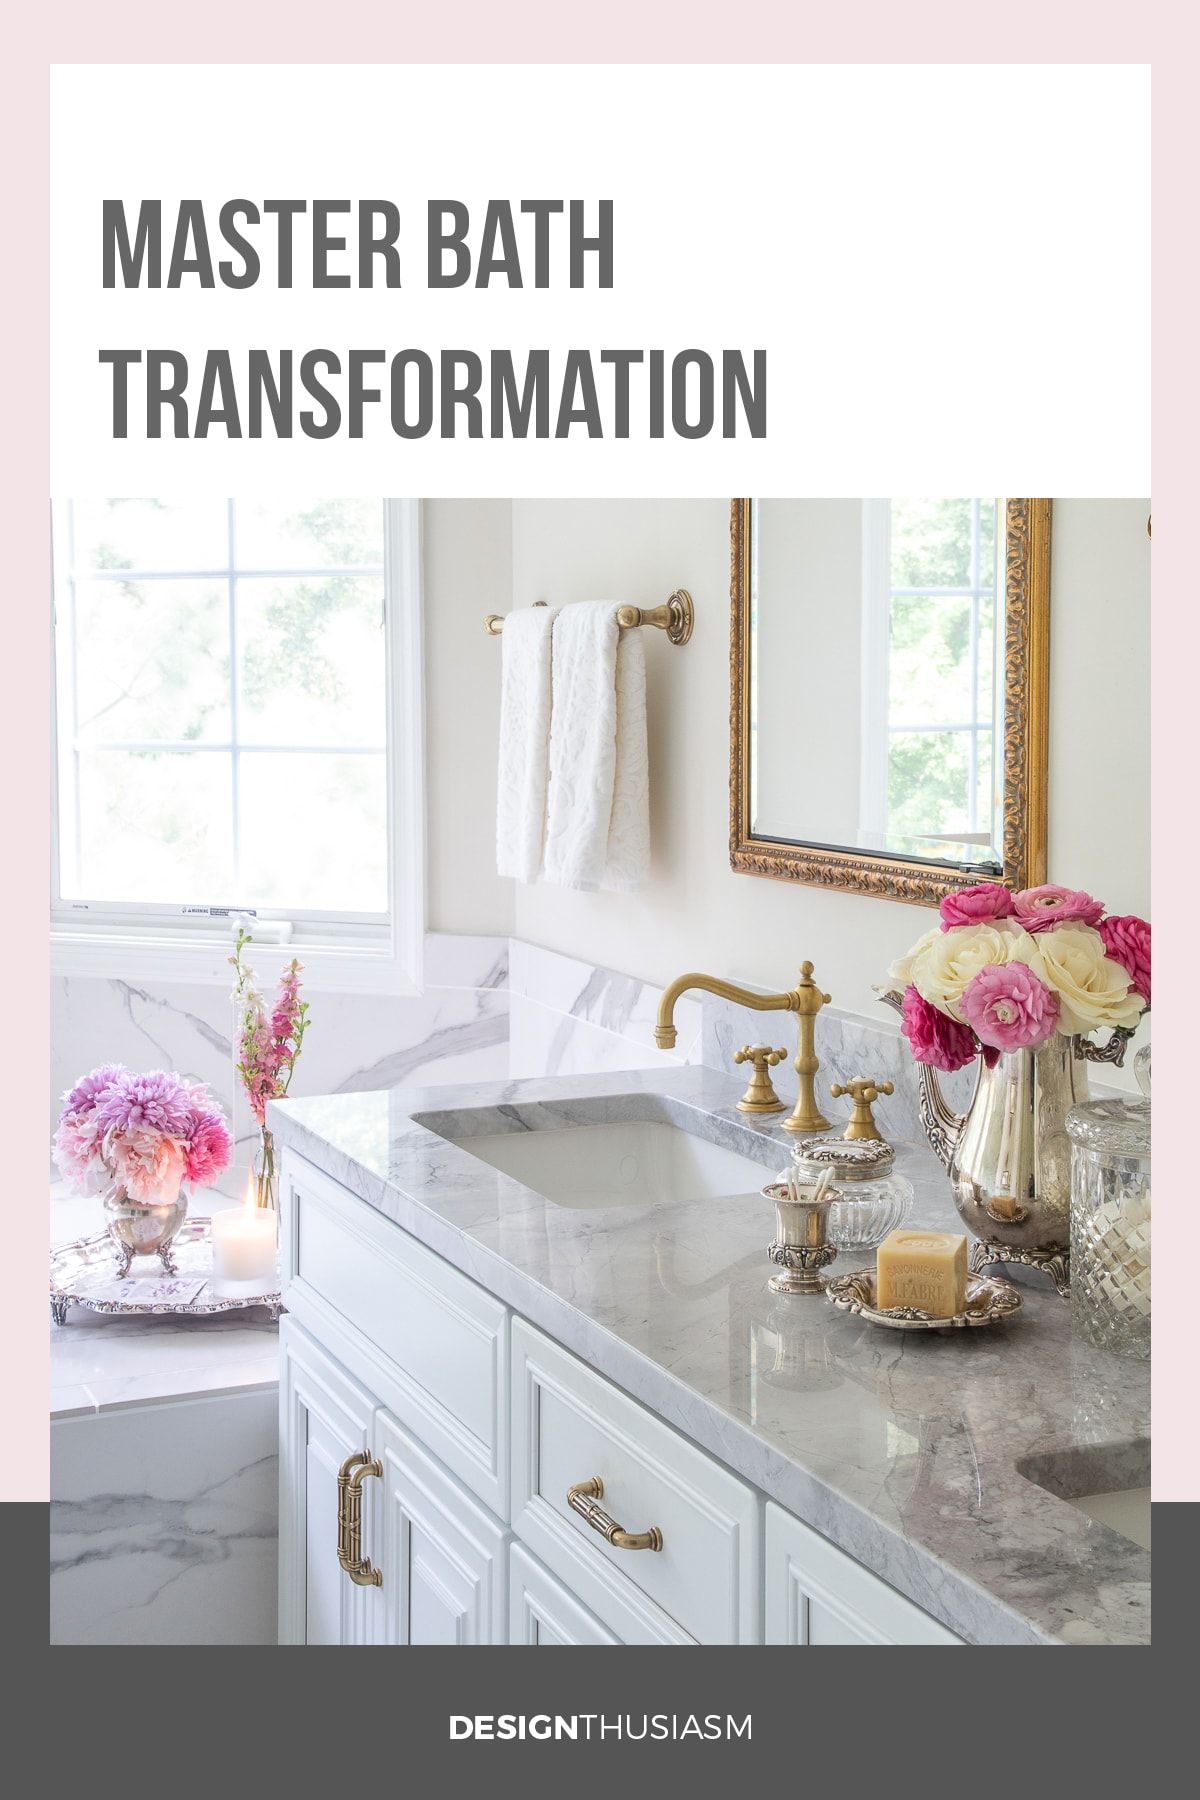 If you're looking for master bathroom makeover ideas, this remodel with before and after pics will inspire you to upgrade to a new bathroom. -----#bathroomrenovations #bathroomideas #bathroomdesigns #bathroomremodel #bathroommakeovers #newbathroom #bathroomupdates #whitebathroom